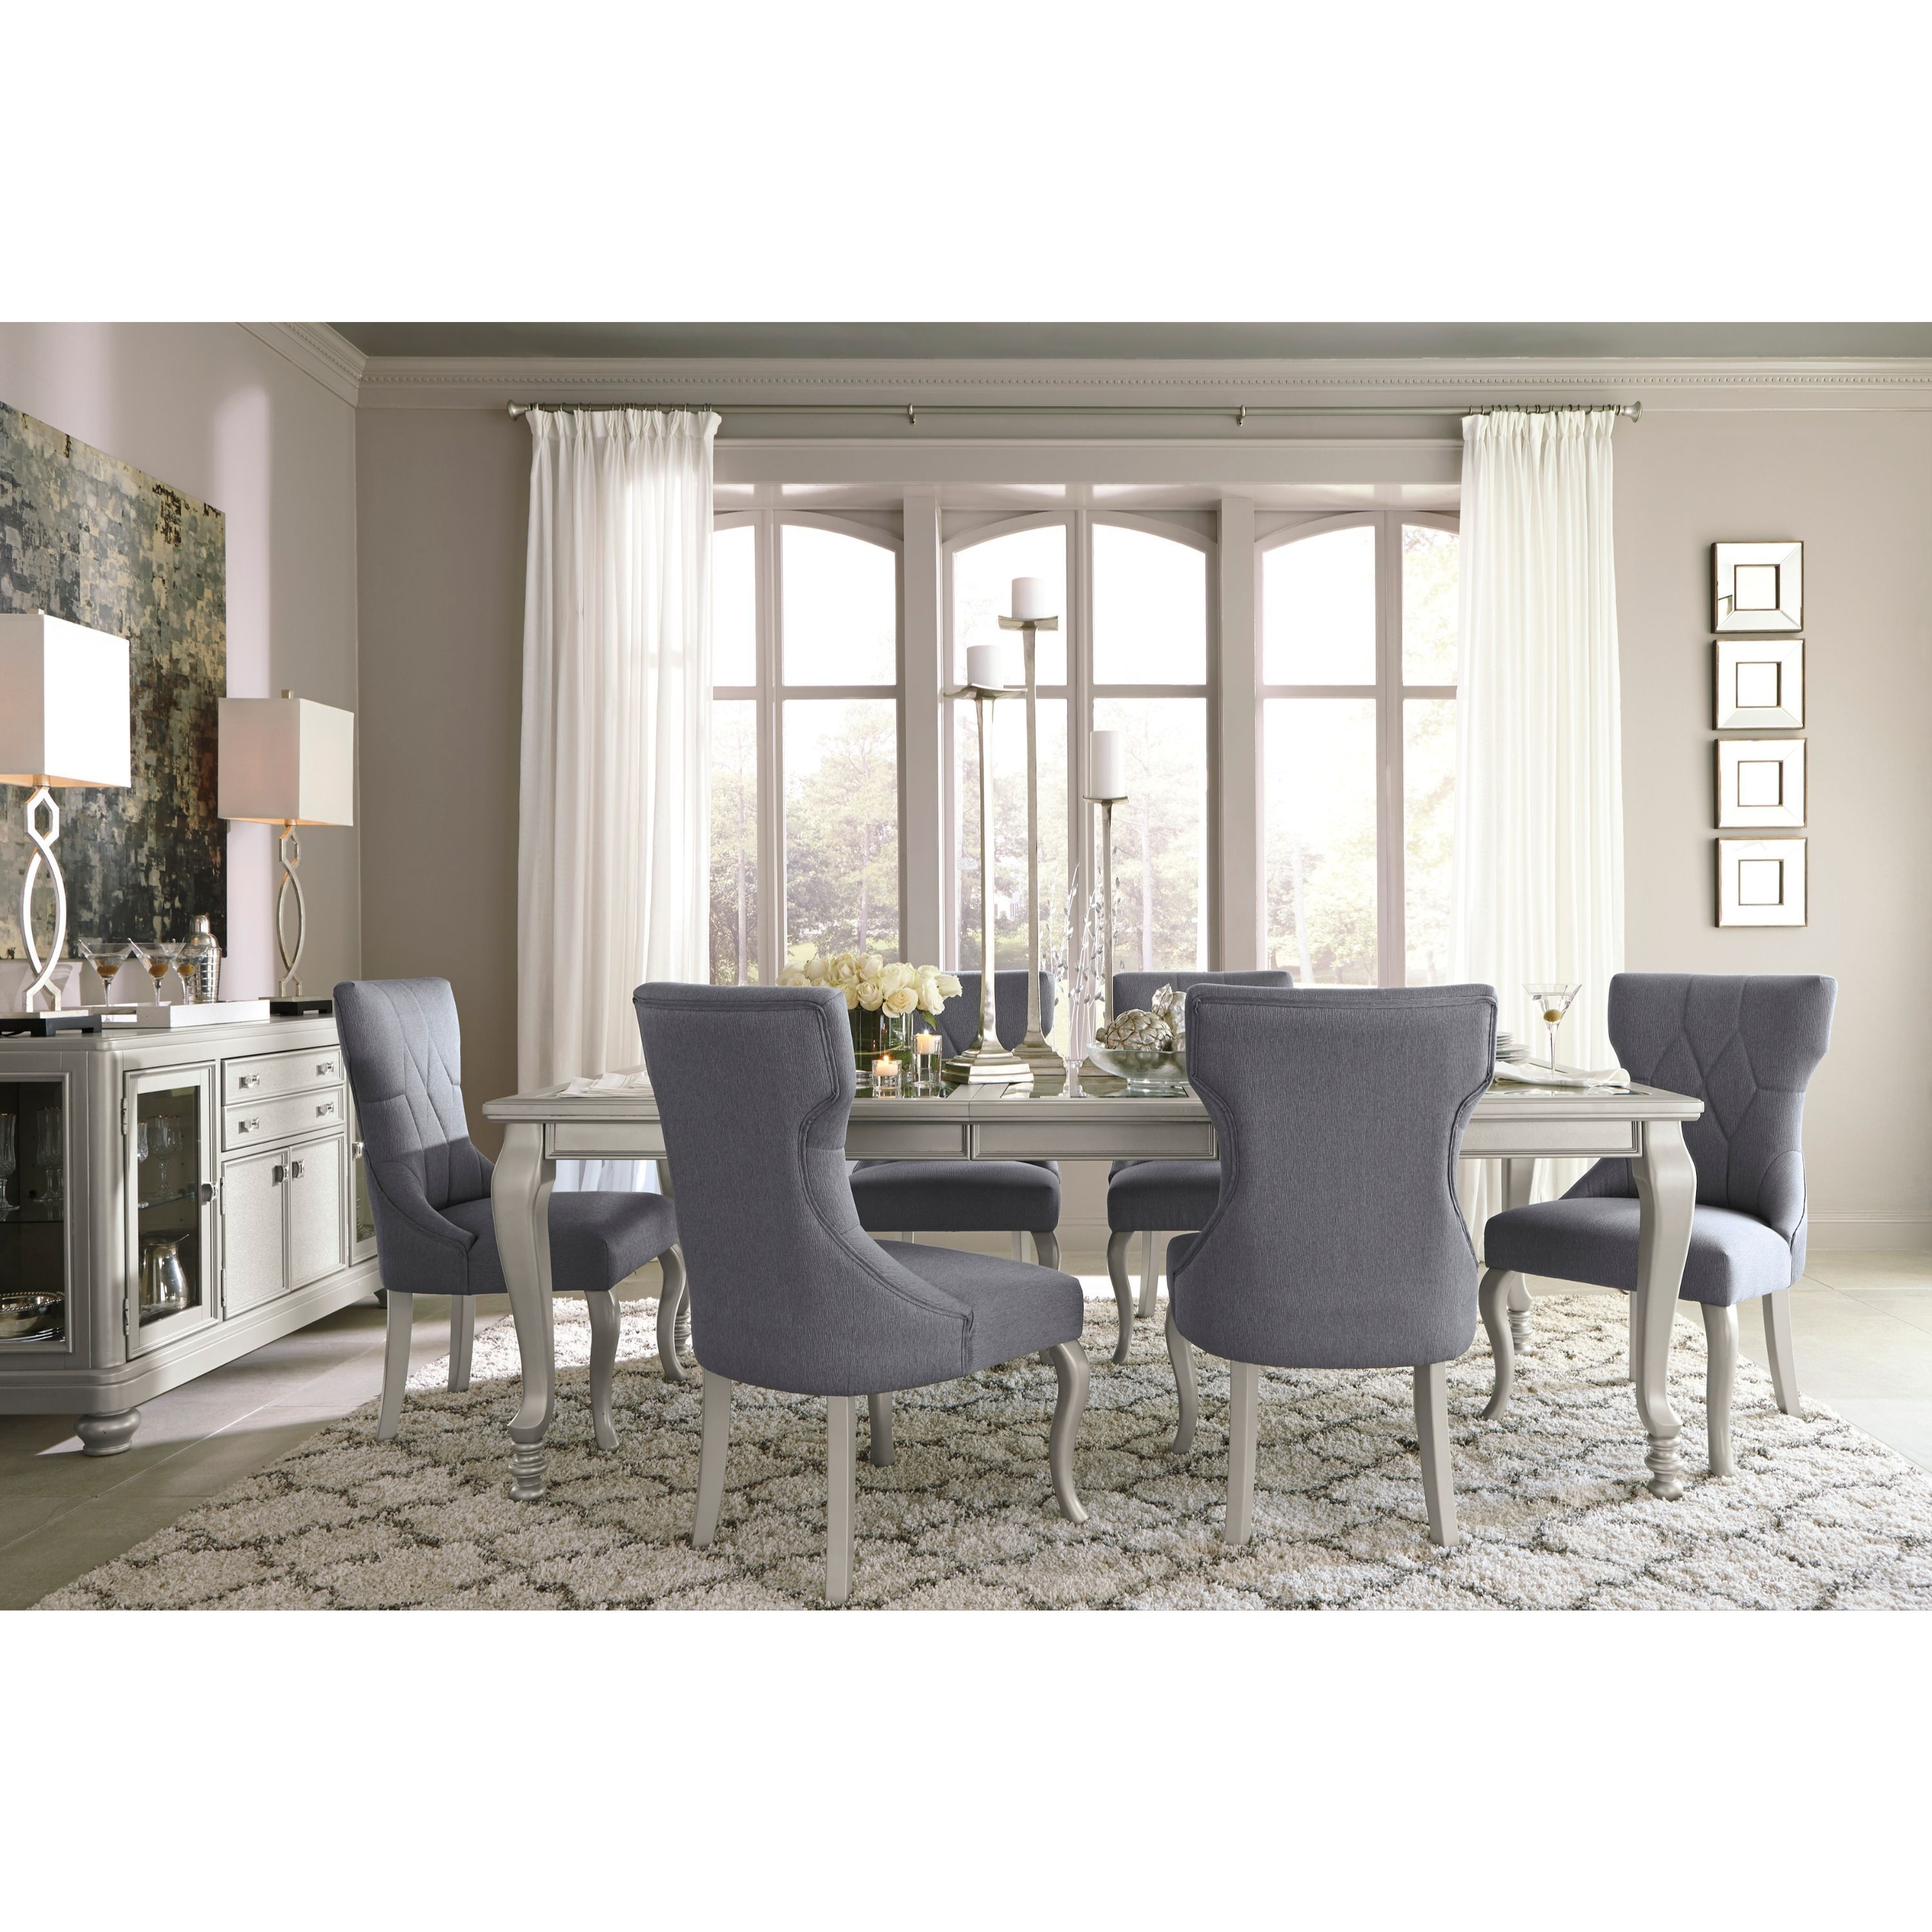 Most Recent Cora 5 Piece Dining Sets Pertaining To Shop Signature Designashley Coralayne Silver Dining Room Table (View 11 of 25)